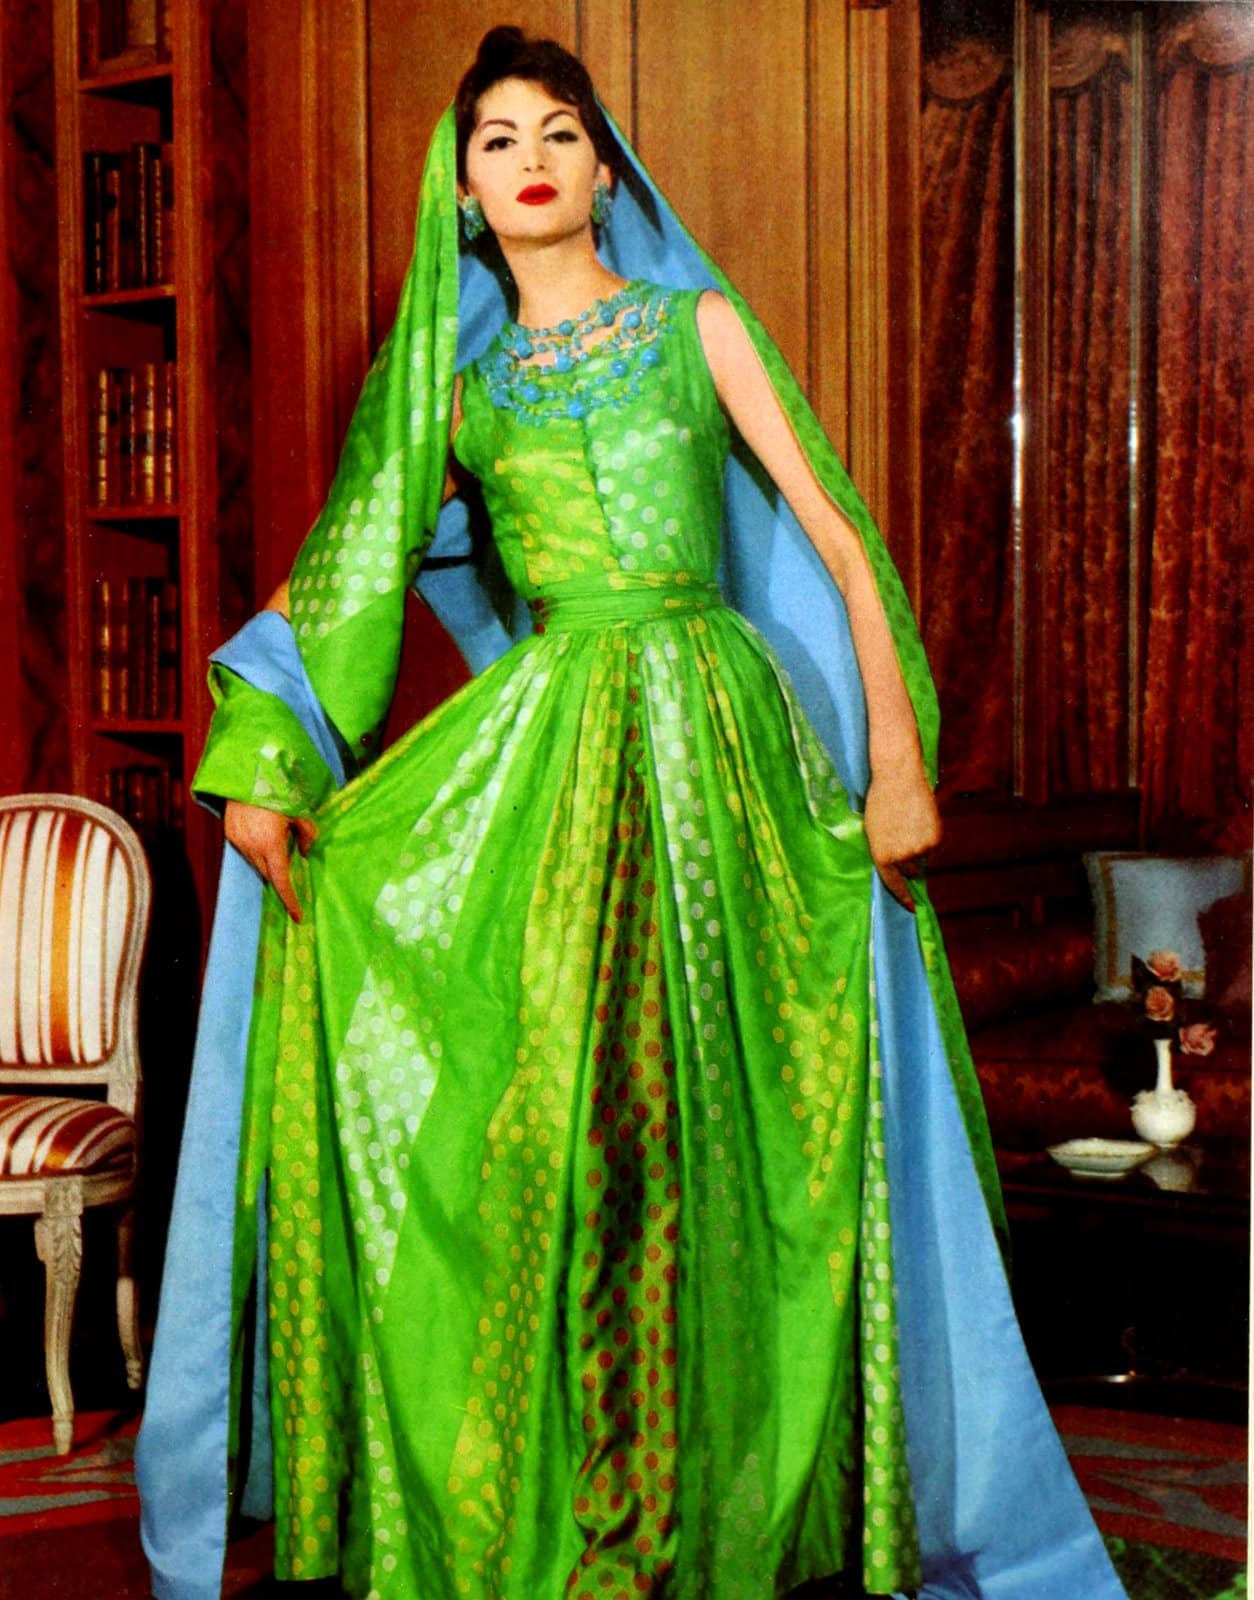 Vintage green and blue sari dress from America in the 1950s